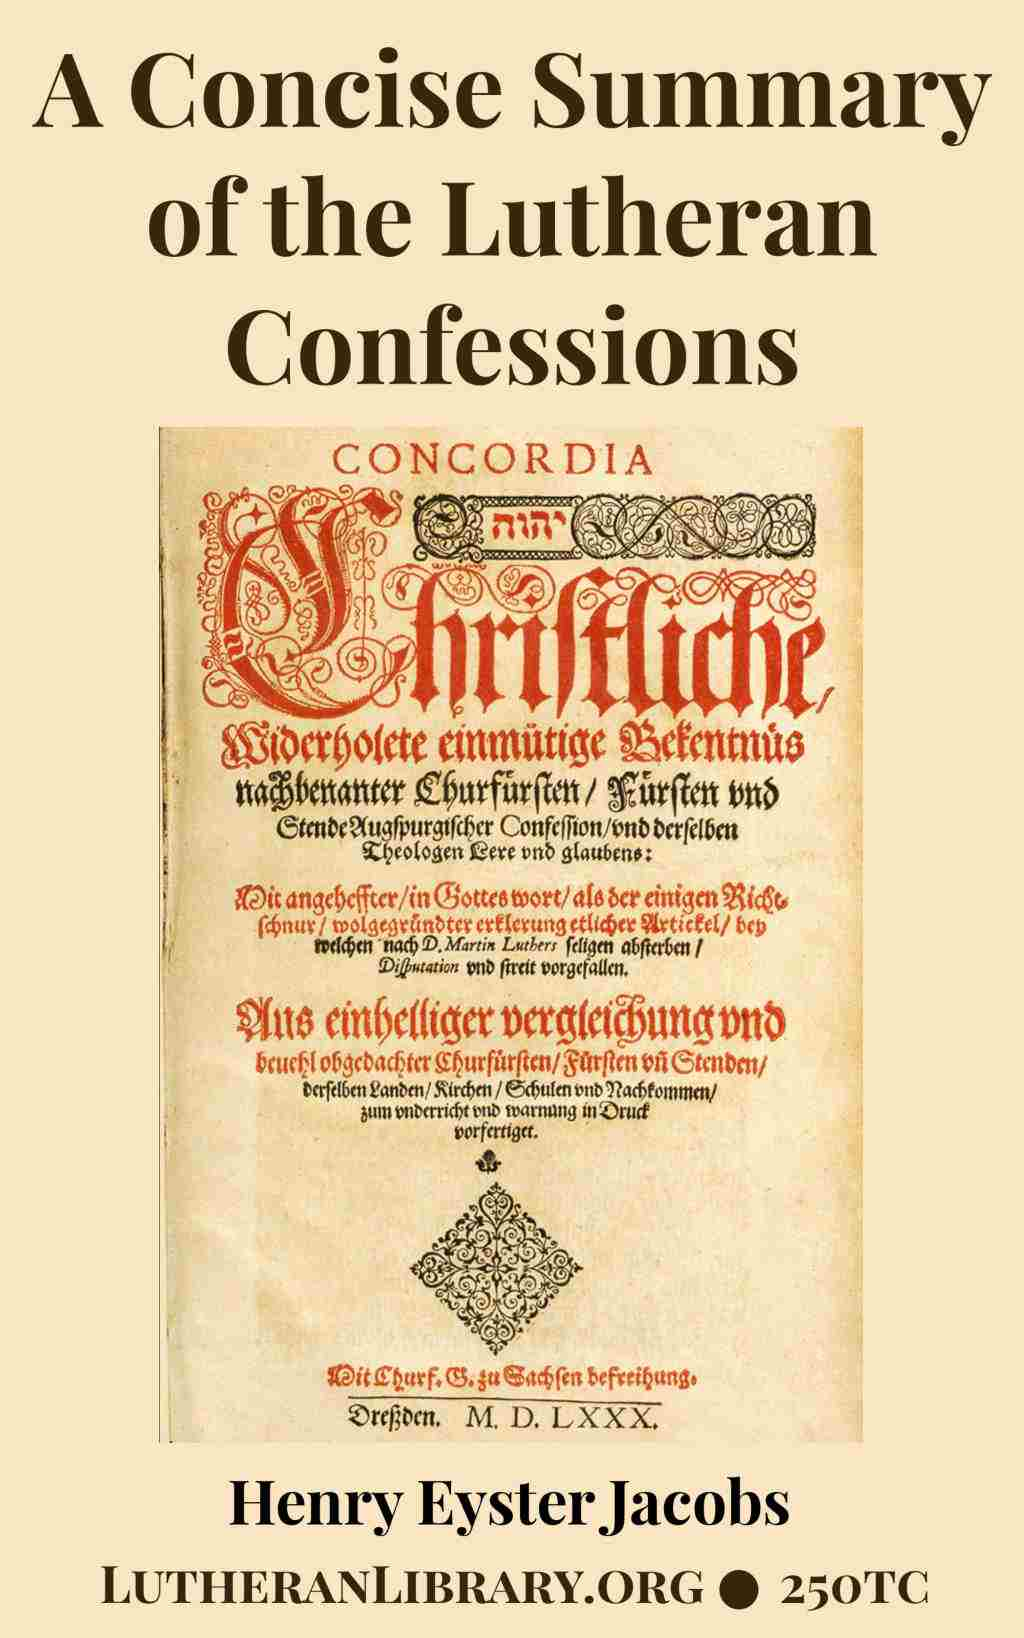 A Concise Summary of The Lutheran Confessions by Henry Eyster Jacobs